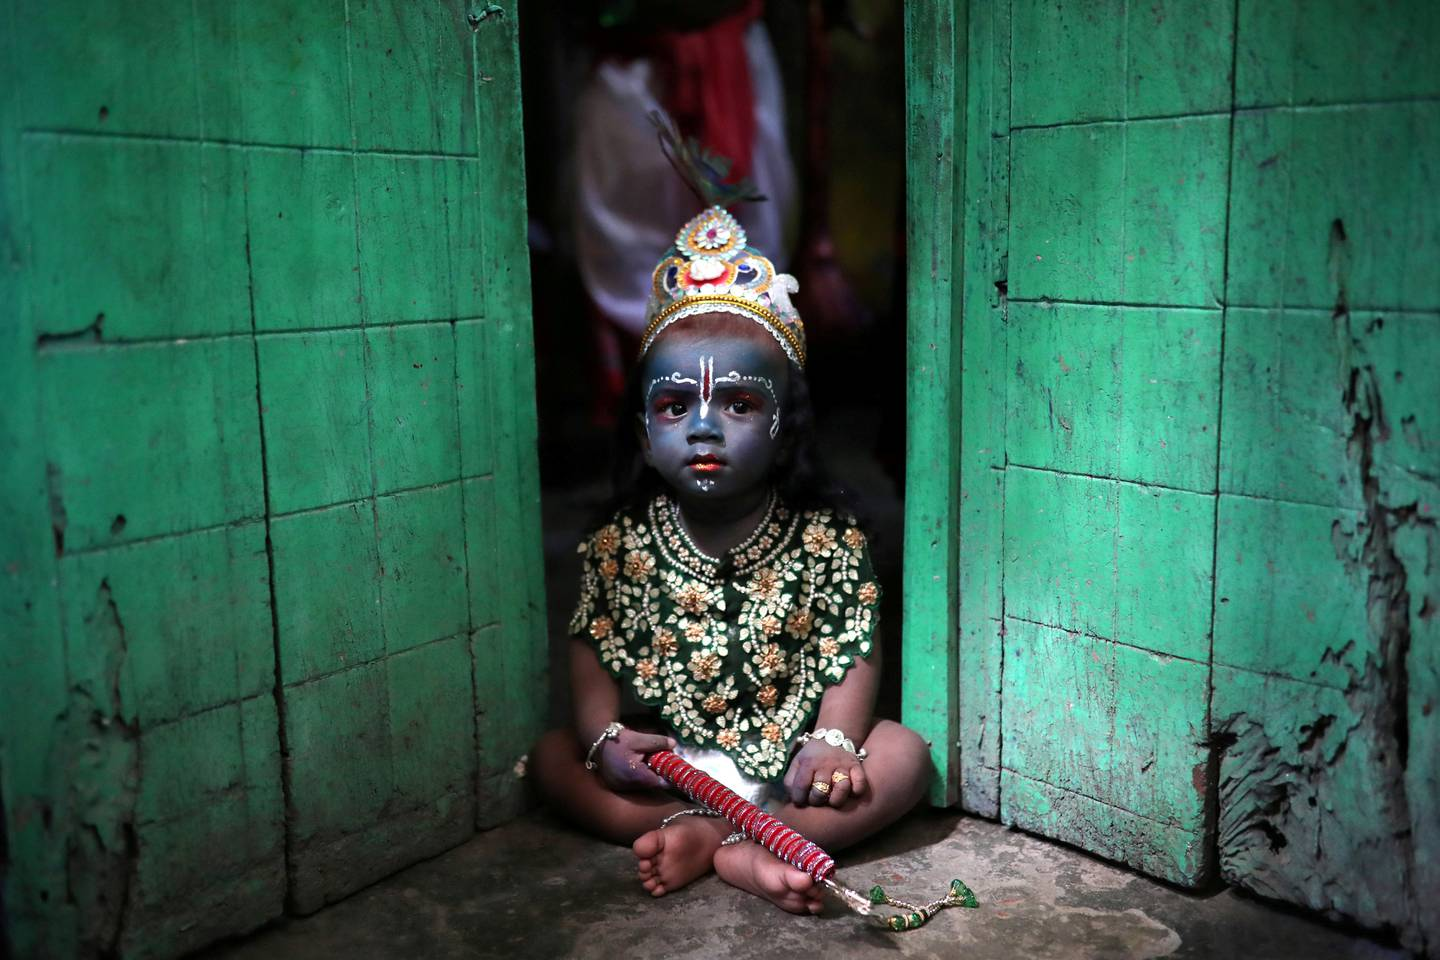 A child sits on a doorstep, dressed as Lord Krishna during Janmashtami festival, which marks the birth anniversary of Lord Krishna in Dhaka, Bangladesh, September 2, 2018. REUTERS/Mohammad Ponir Hossain      TPX IMAGES OF THE DAY